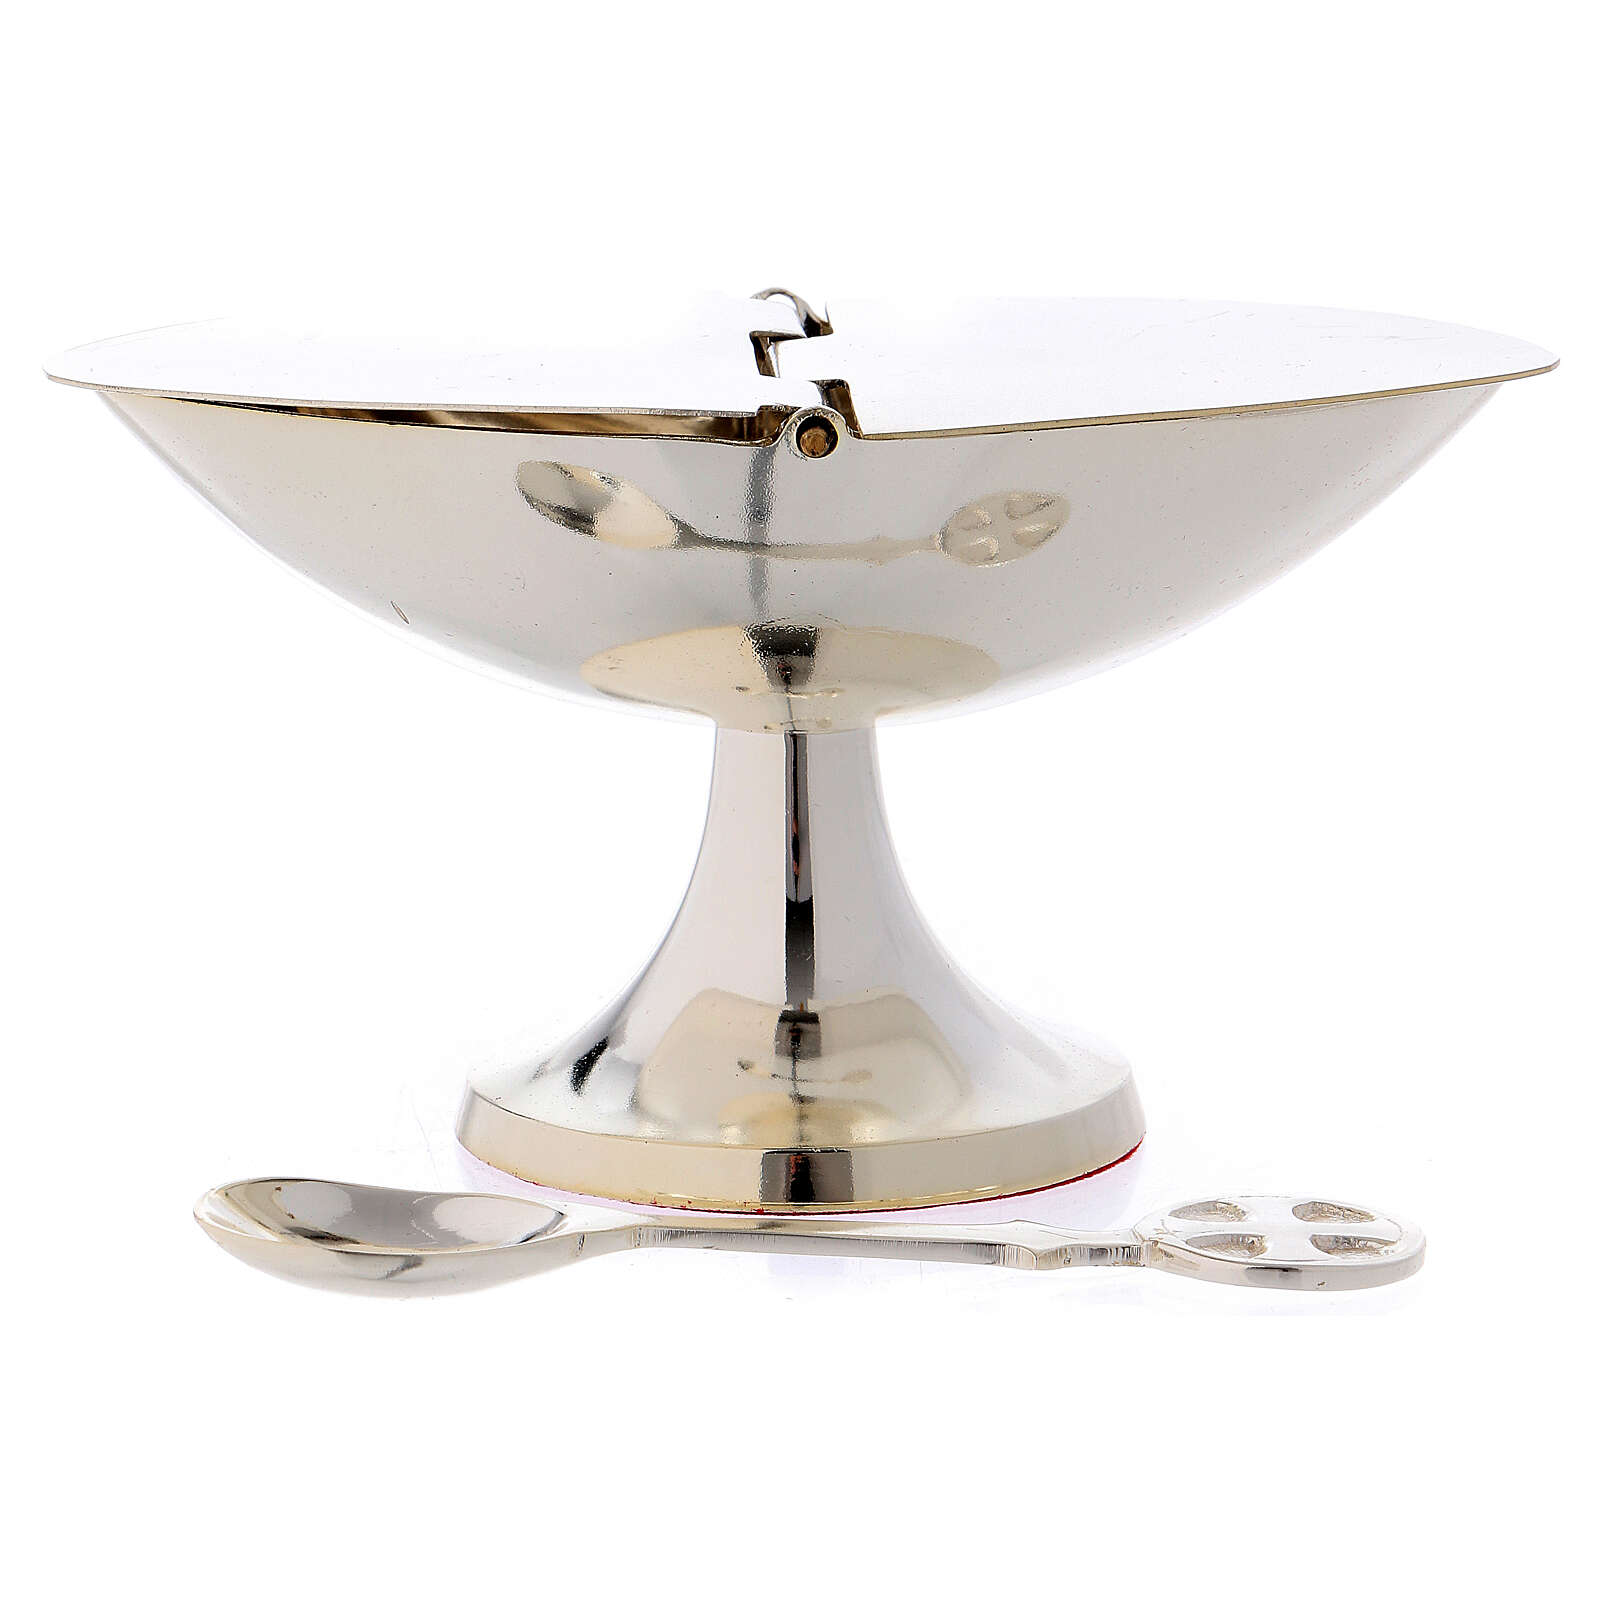 Boat with spoon in silver-plated brass 3